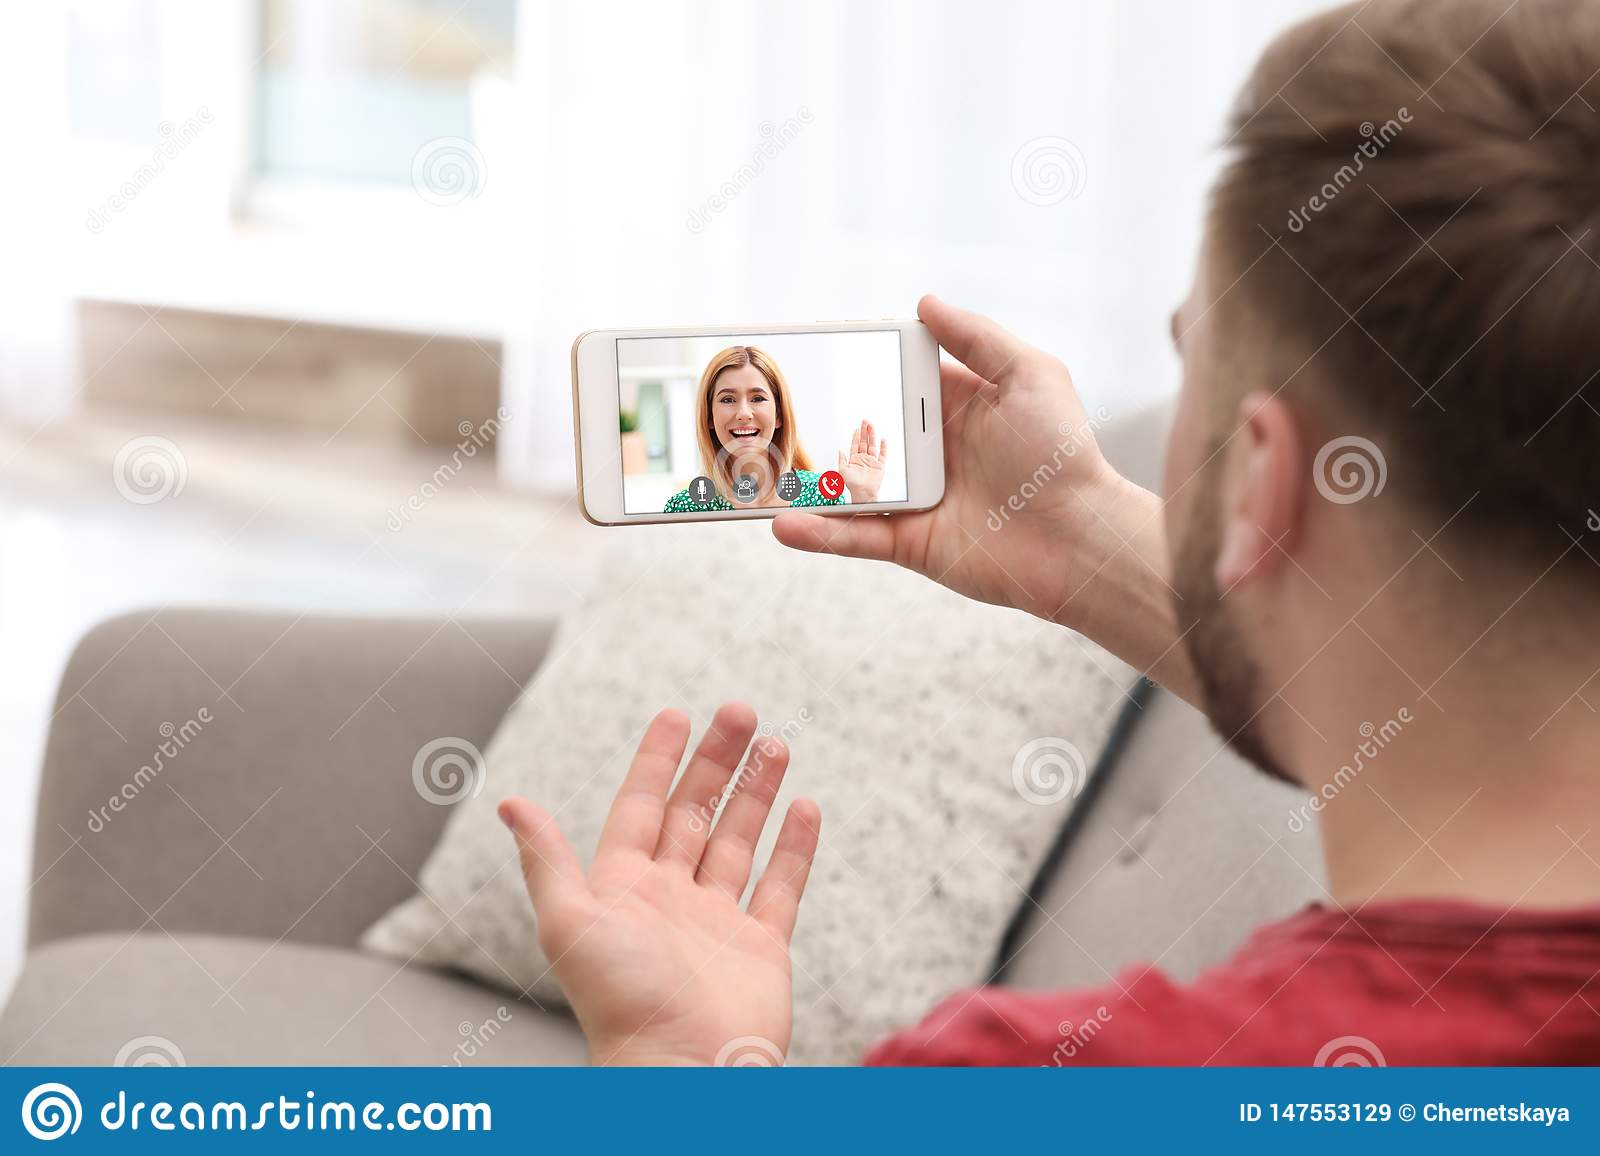 Video chat with men